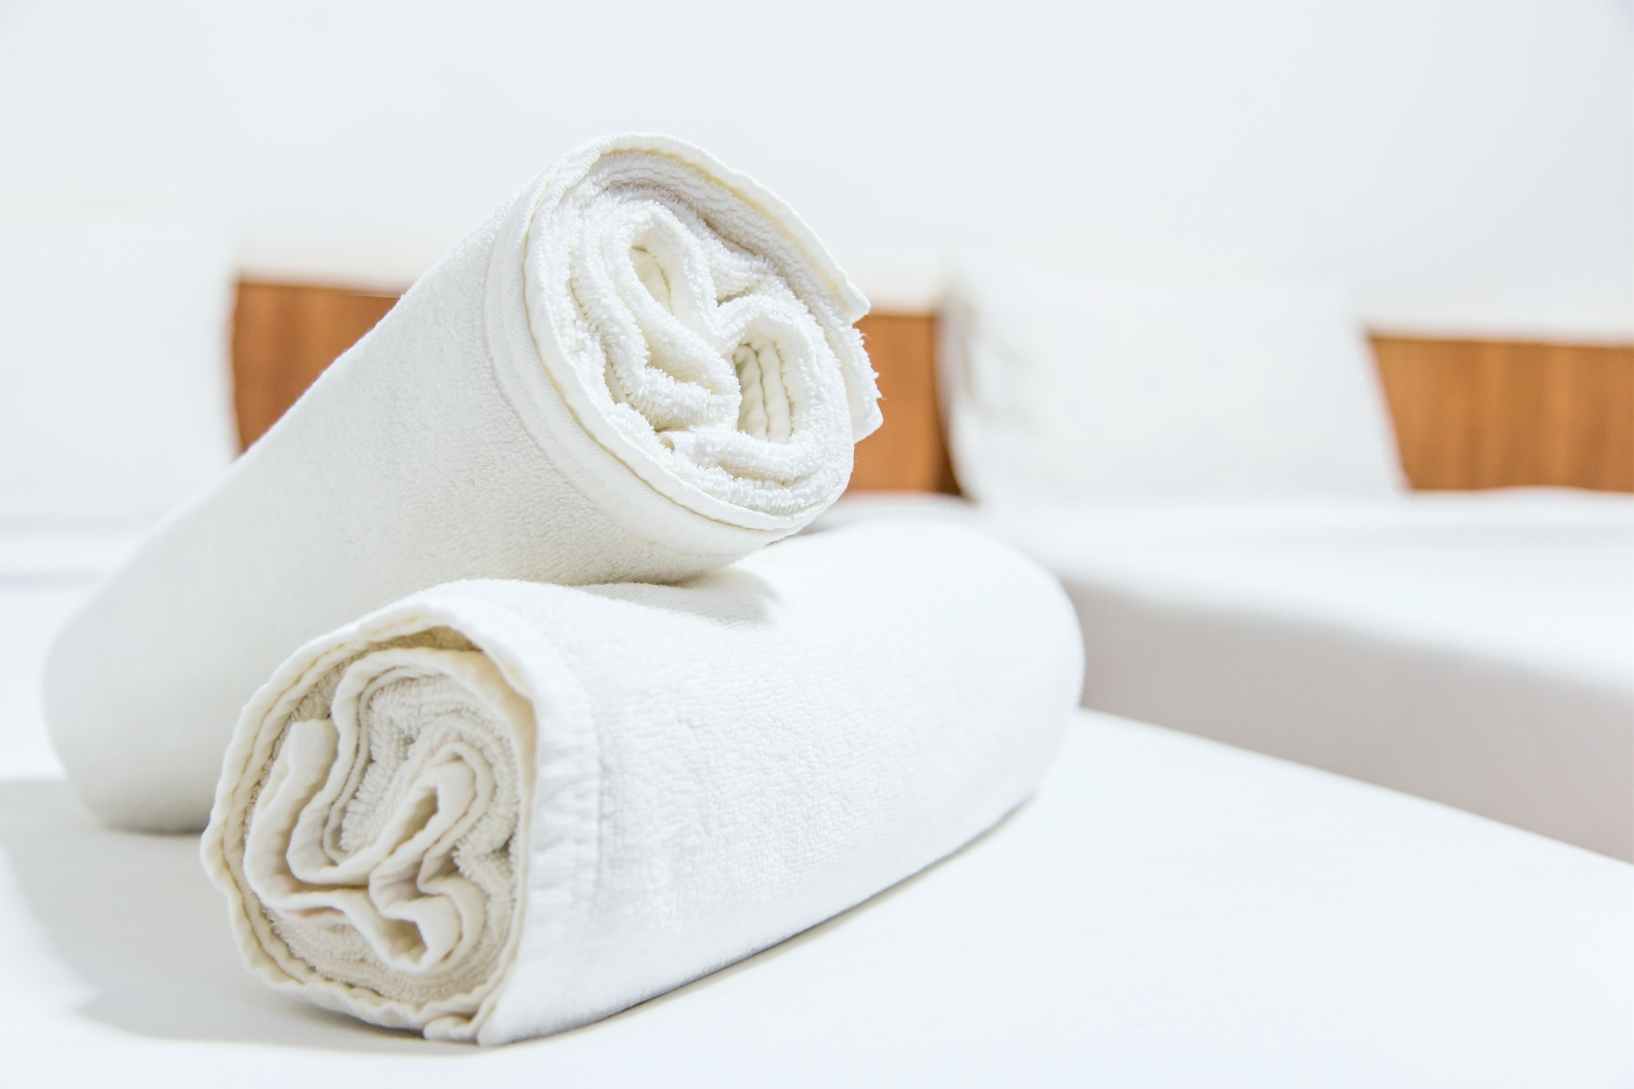 Hotel towels by Kingly